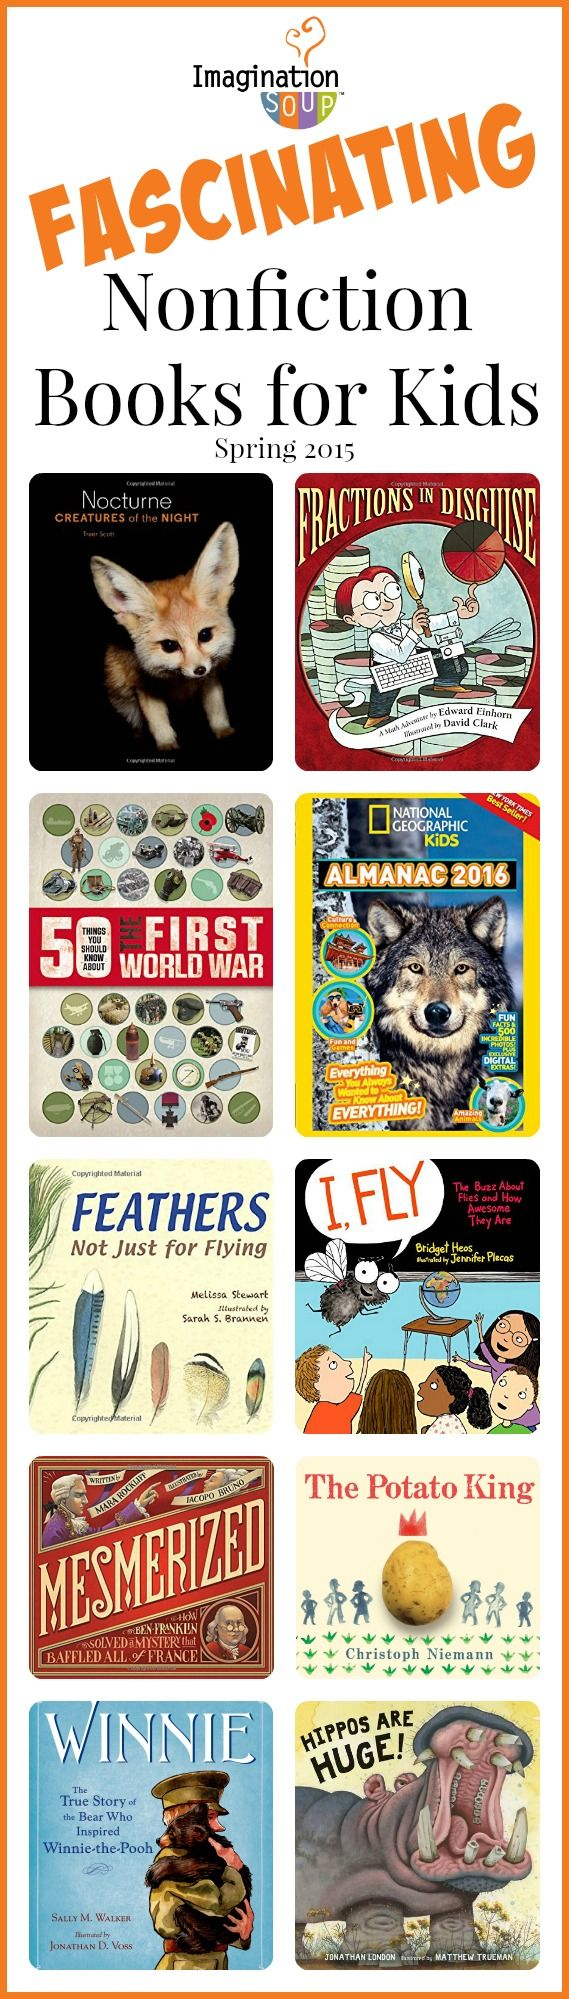 fascinating nonfiction books for kids, spring 2015